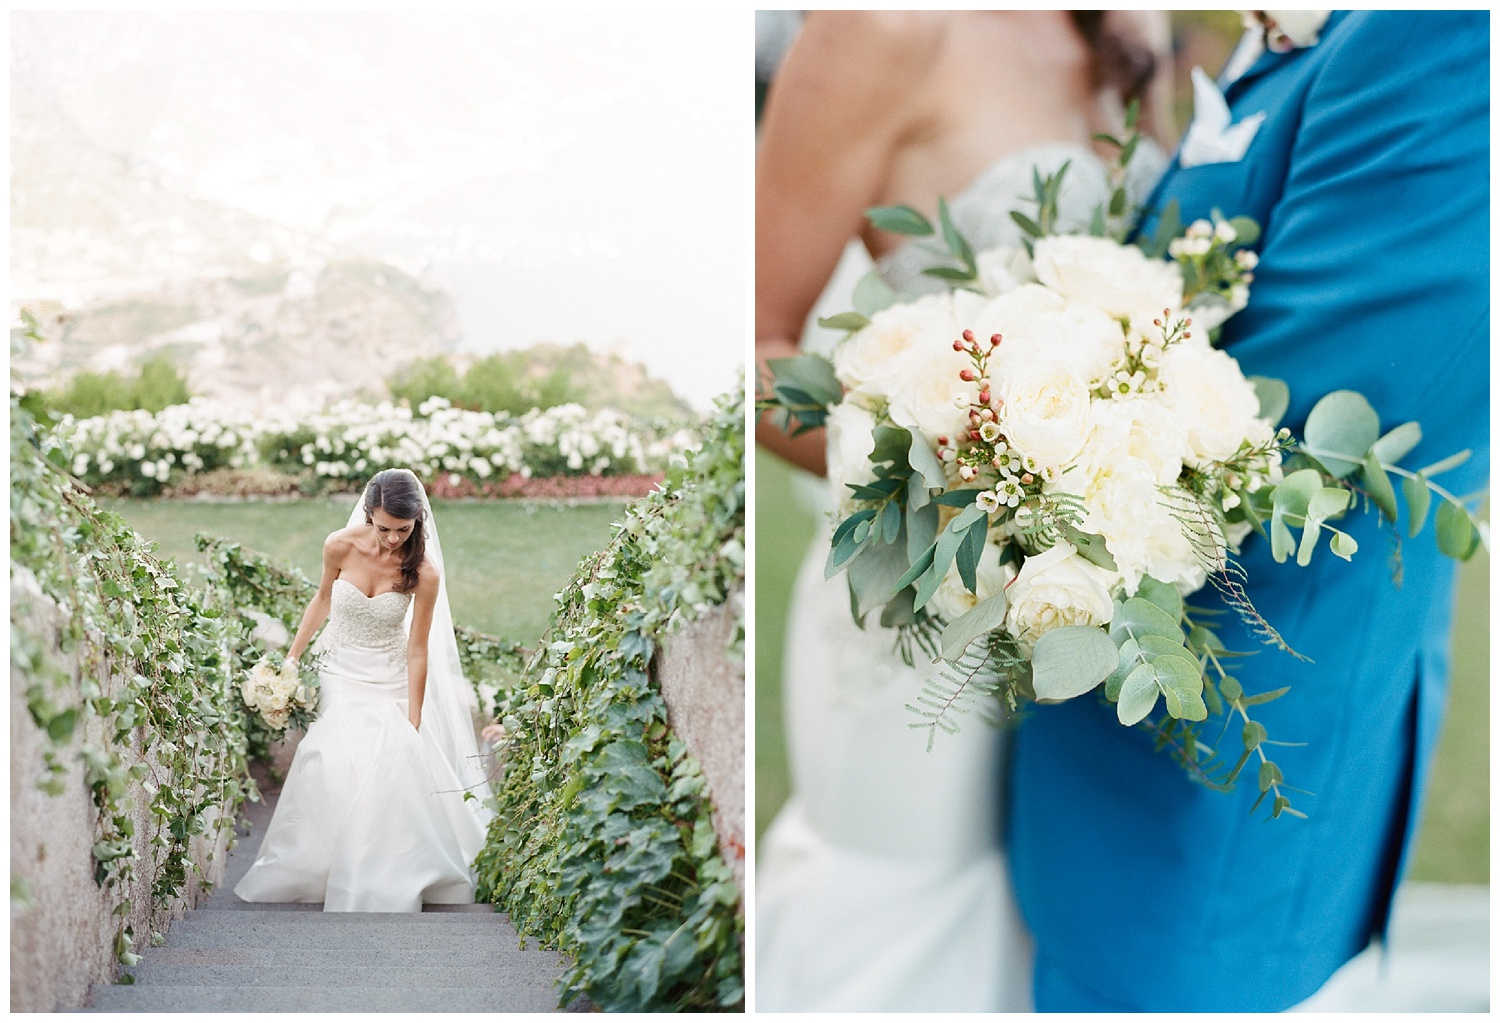 The bride walks up the stairs after the ceremony, shows off her white floral and eucalyptus bouquet; Sylvie Gil Photography